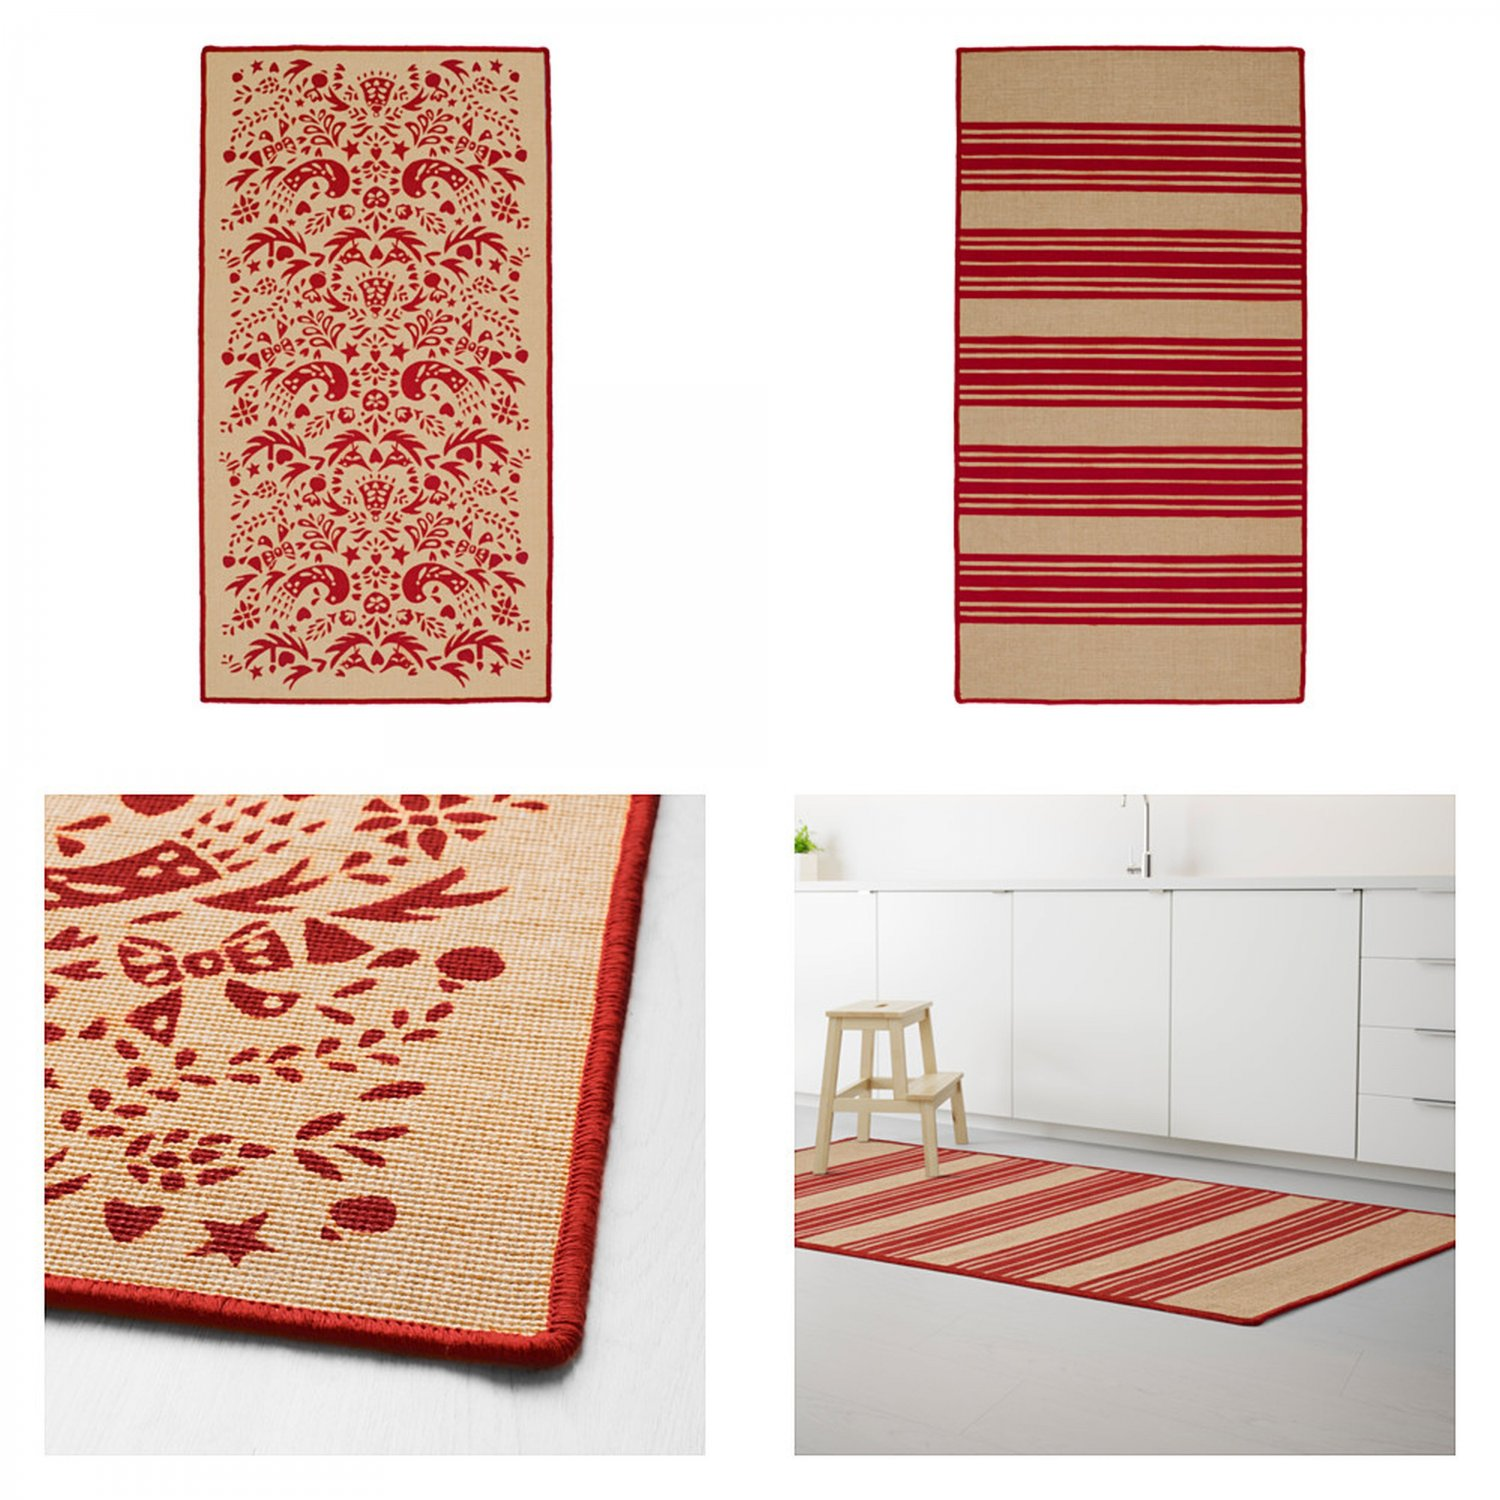 Ikea Vinter 2016 Teppich Ikea Vinter 2016 Red Striped Tolle Pattern Rug Area Throw